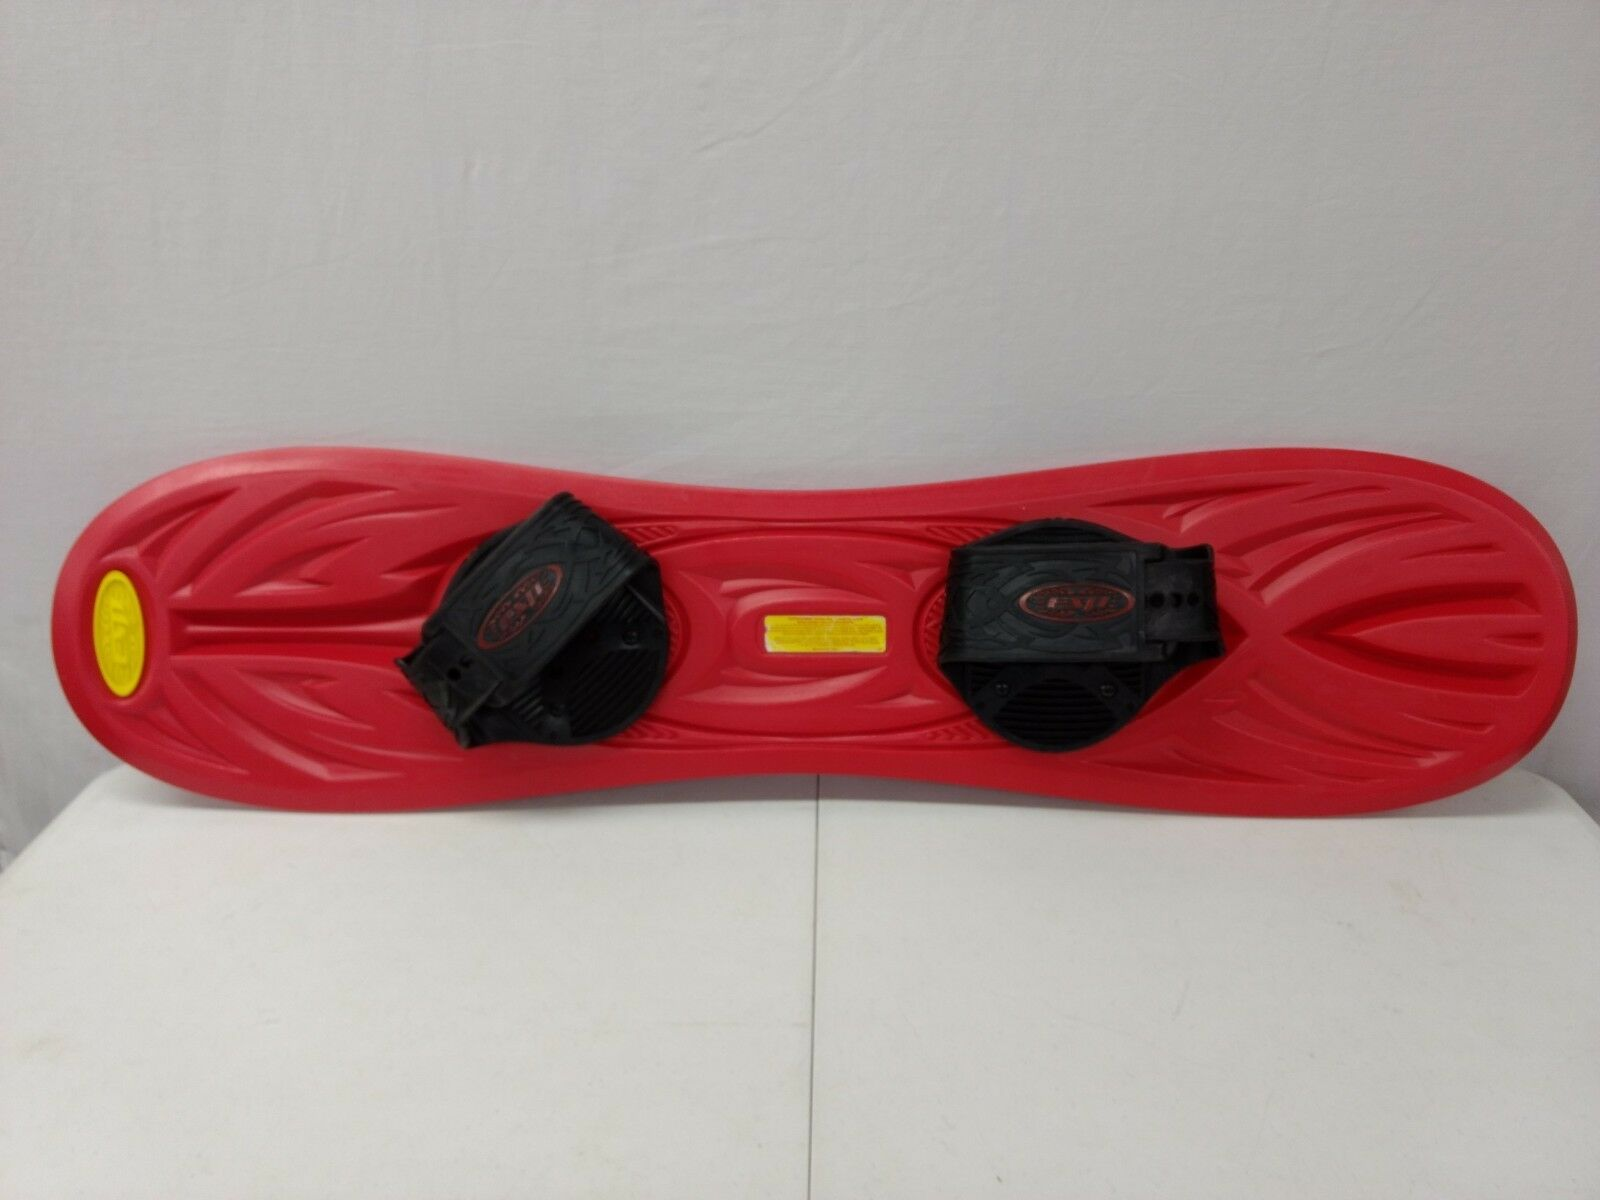 44  ESP Red Plastic Youth Snow Board 95 pound Limit